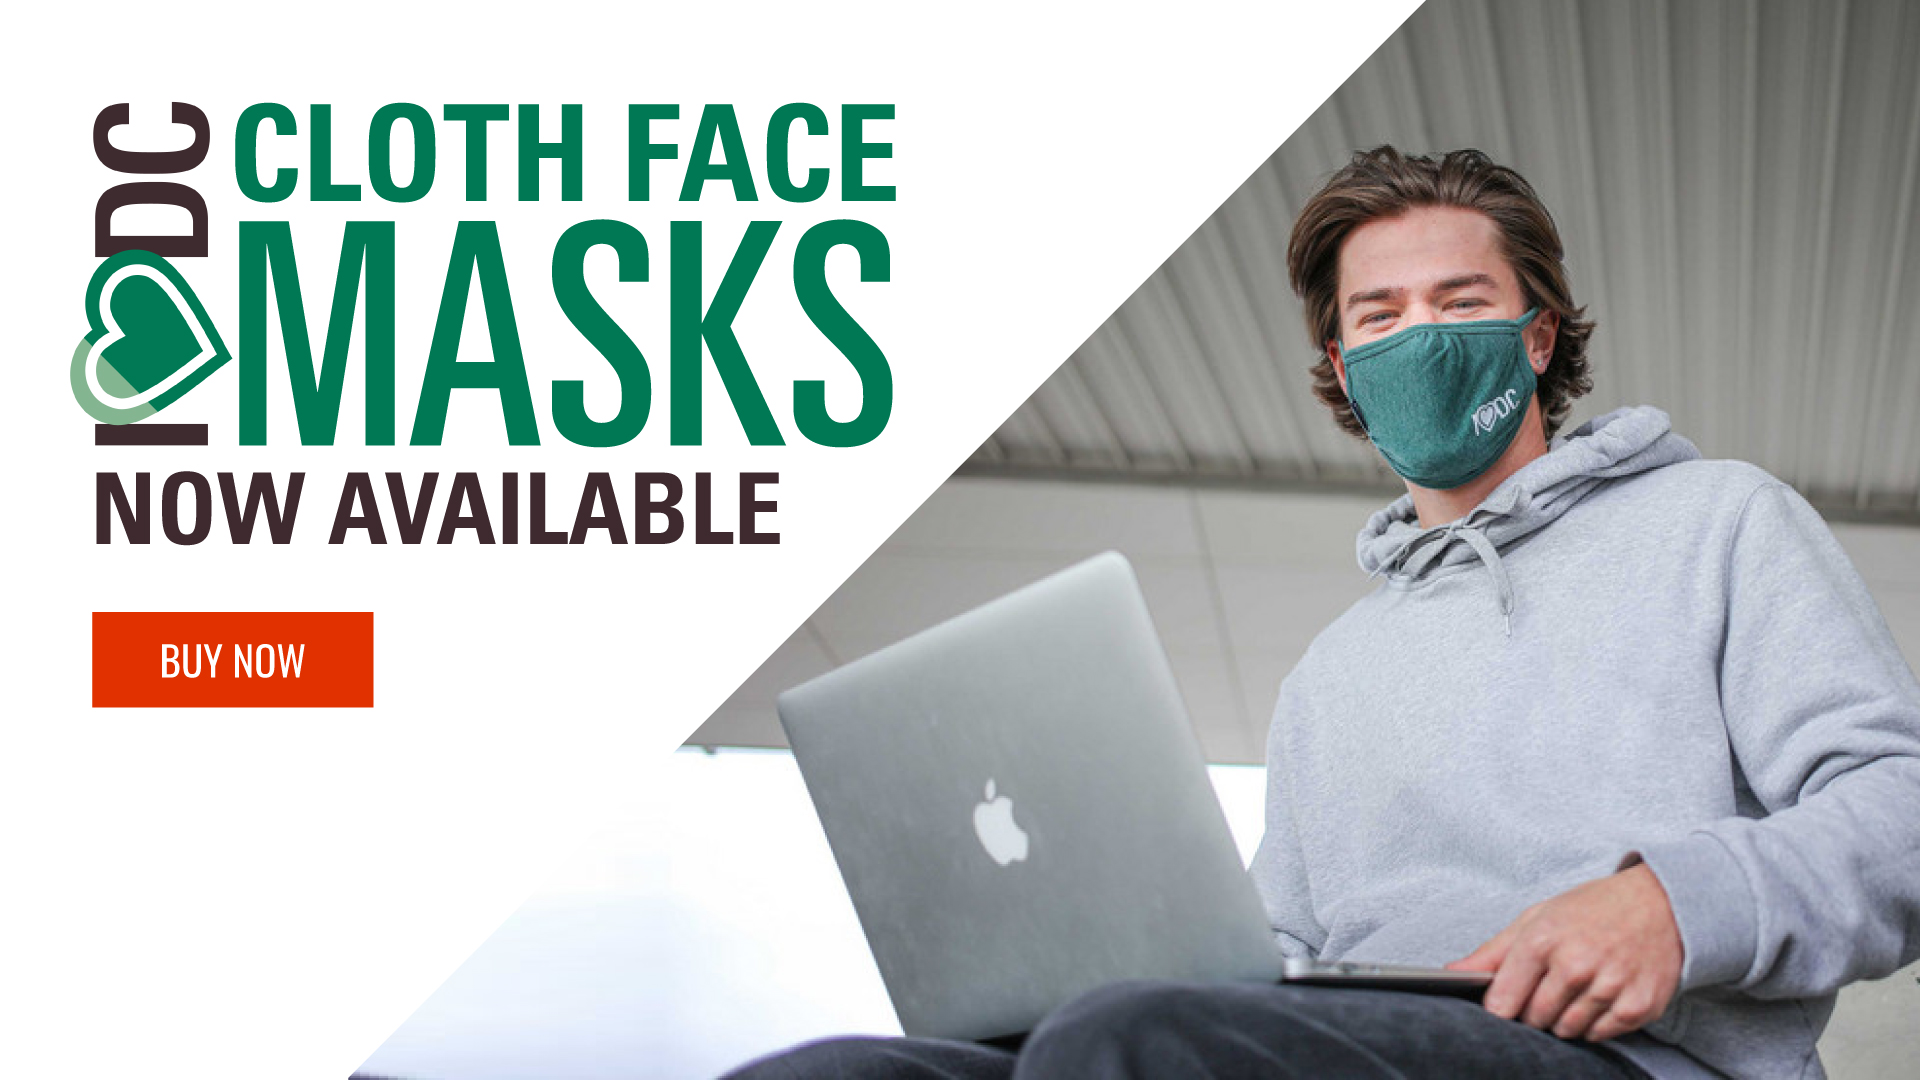 I heart DC face masks now available